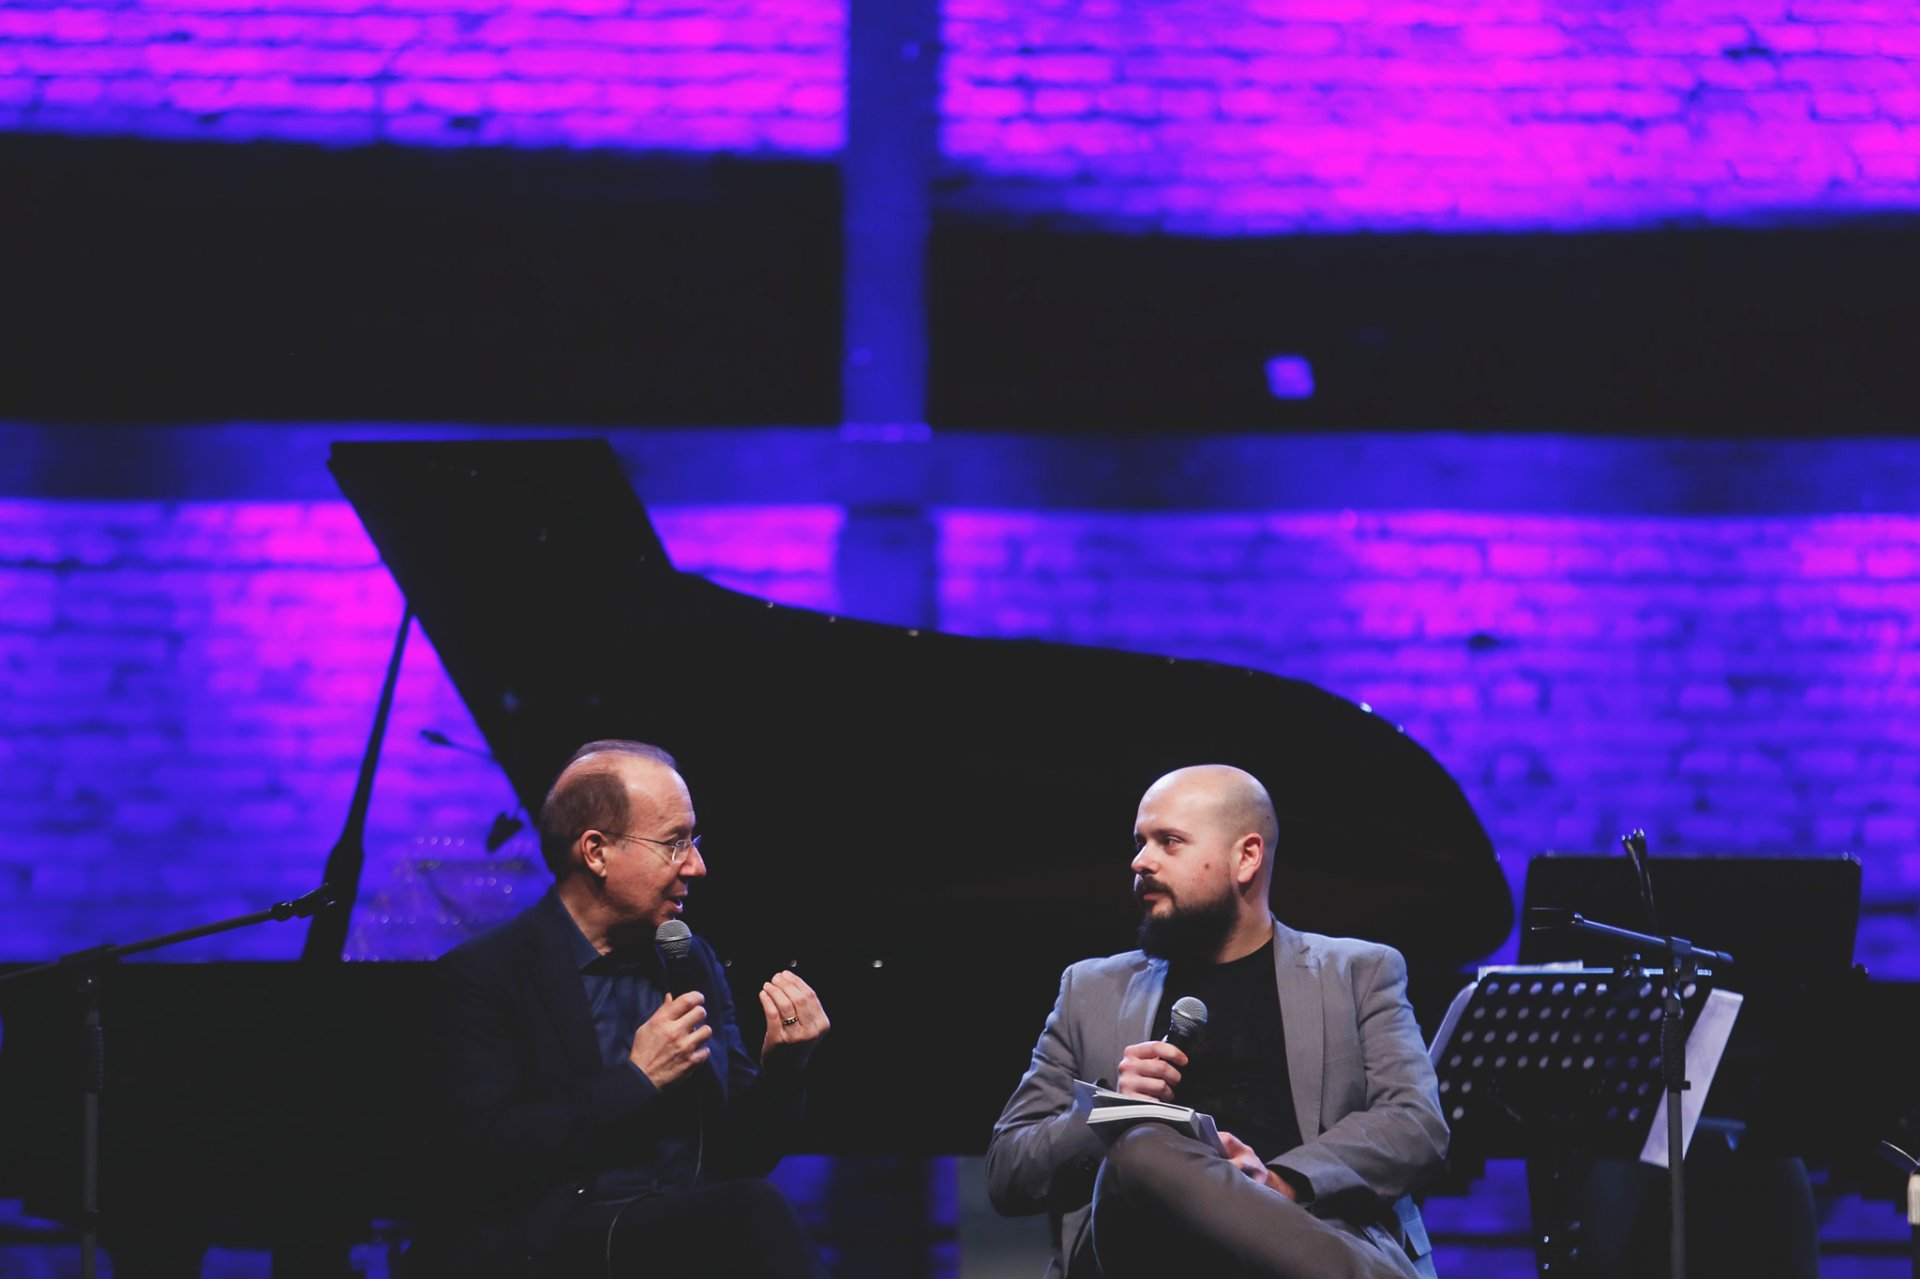 Ivan Fedele and moderator of the artist talk, composer Tomislav Oliver